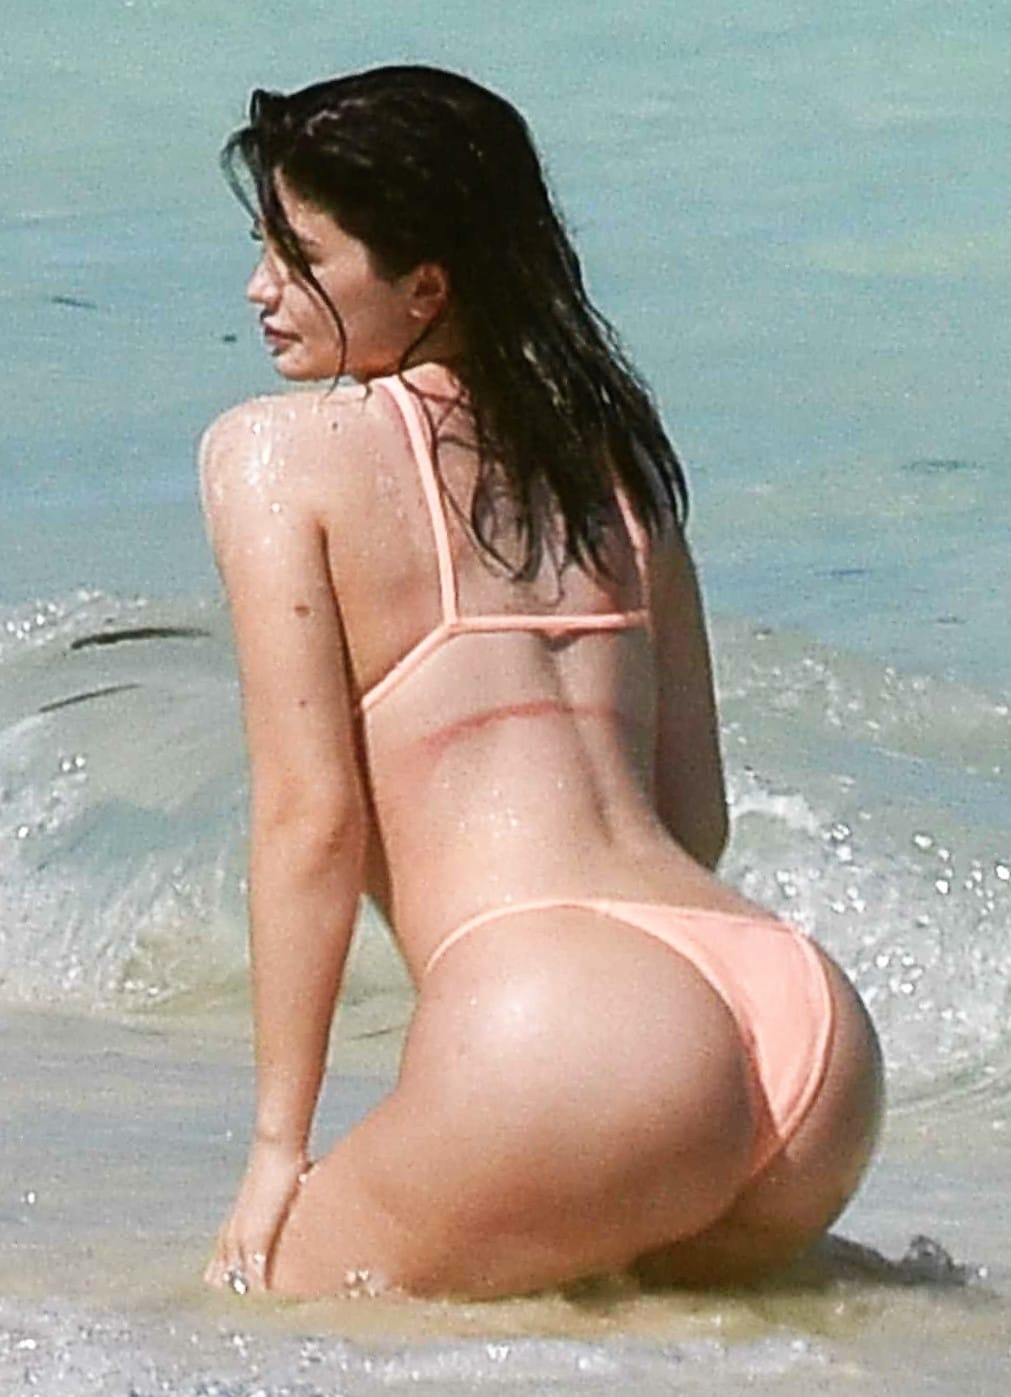 Kylie Jenner bikini pic on her birthday showing off her ass!